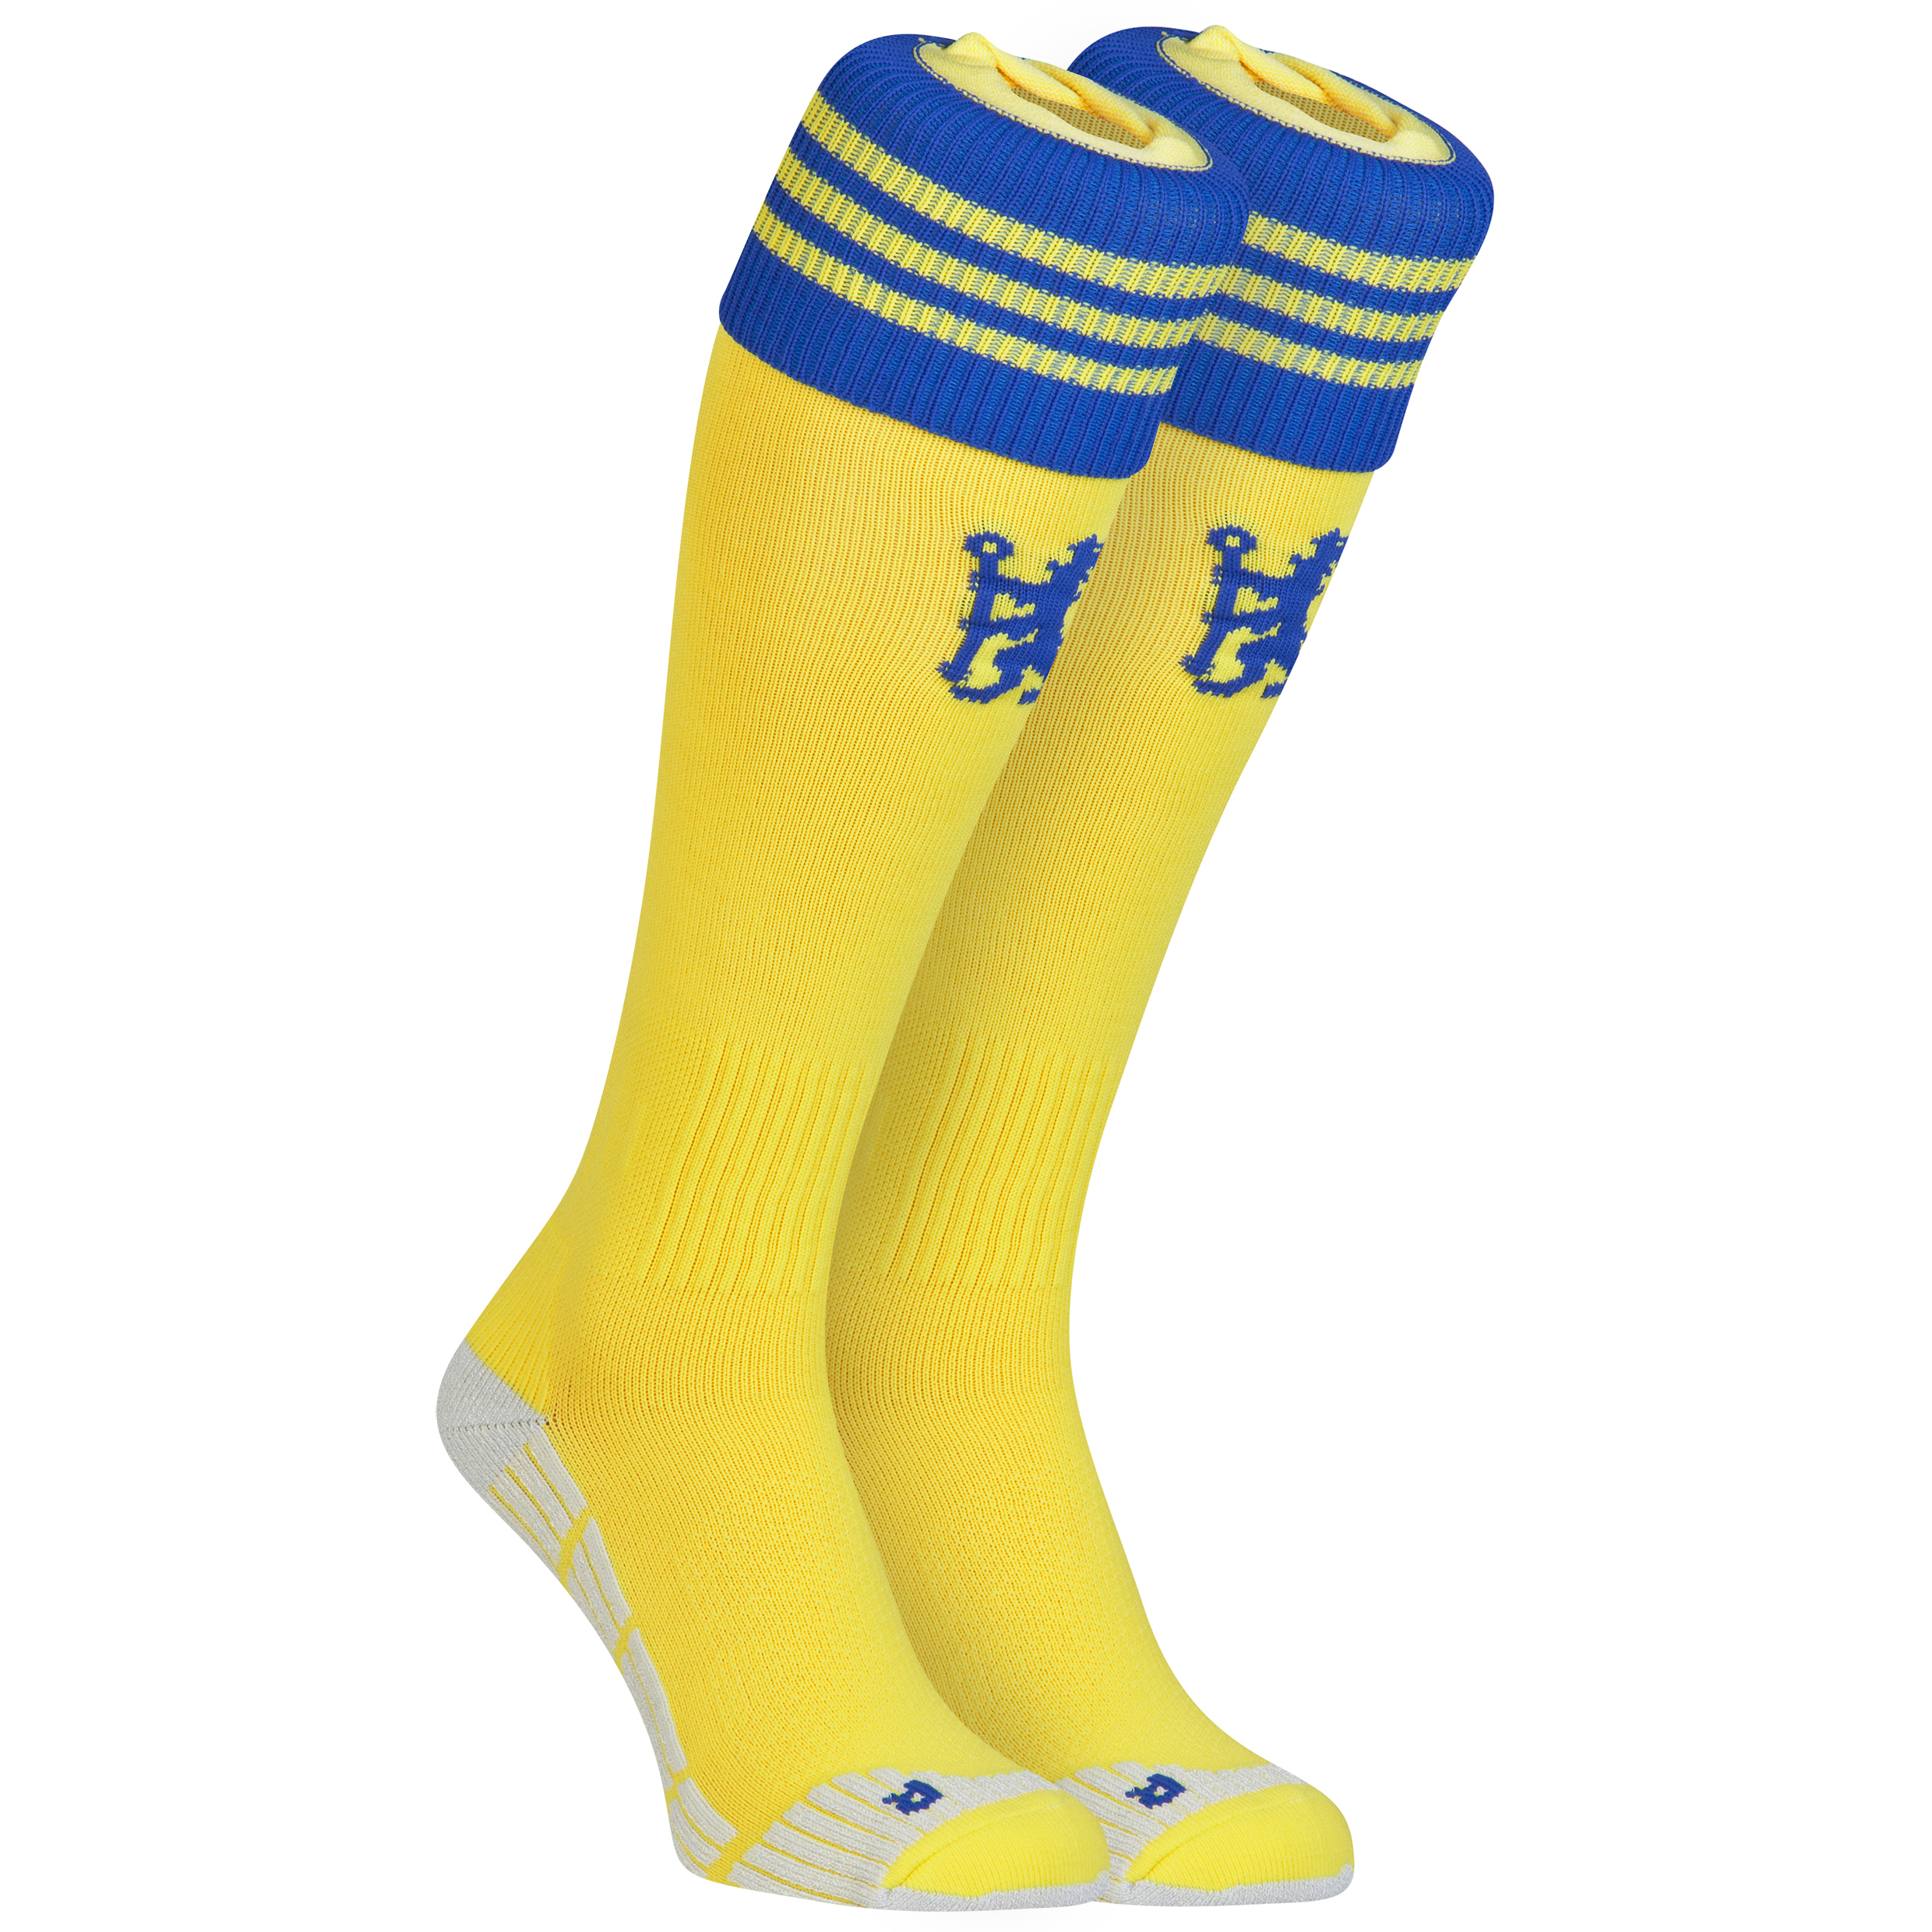 Chelsea Away Socks 2014/15 Yellow   Wear your team pride with every step with these yellow 2014/15 Chelsea away socks which are inspired by the iconic yellow away kits from the club's past. Styled in yellow with contrast blue details including a club crest and the adidas three stripe logo, you can wear these socks for team pride and style.   Fans of all ages will have great memories of Chelsea in a yellow away strip, from its first outings with the likes of Peter Osgood in the 1960s and 1970s, through to Frank Lampard's fantastic performance in the FA Cup 2009 final.   Benefits of these Chelsea Away Socks •Iconic yellow colour •Club branding •Team crest and adidas logo for pride and an athletic style